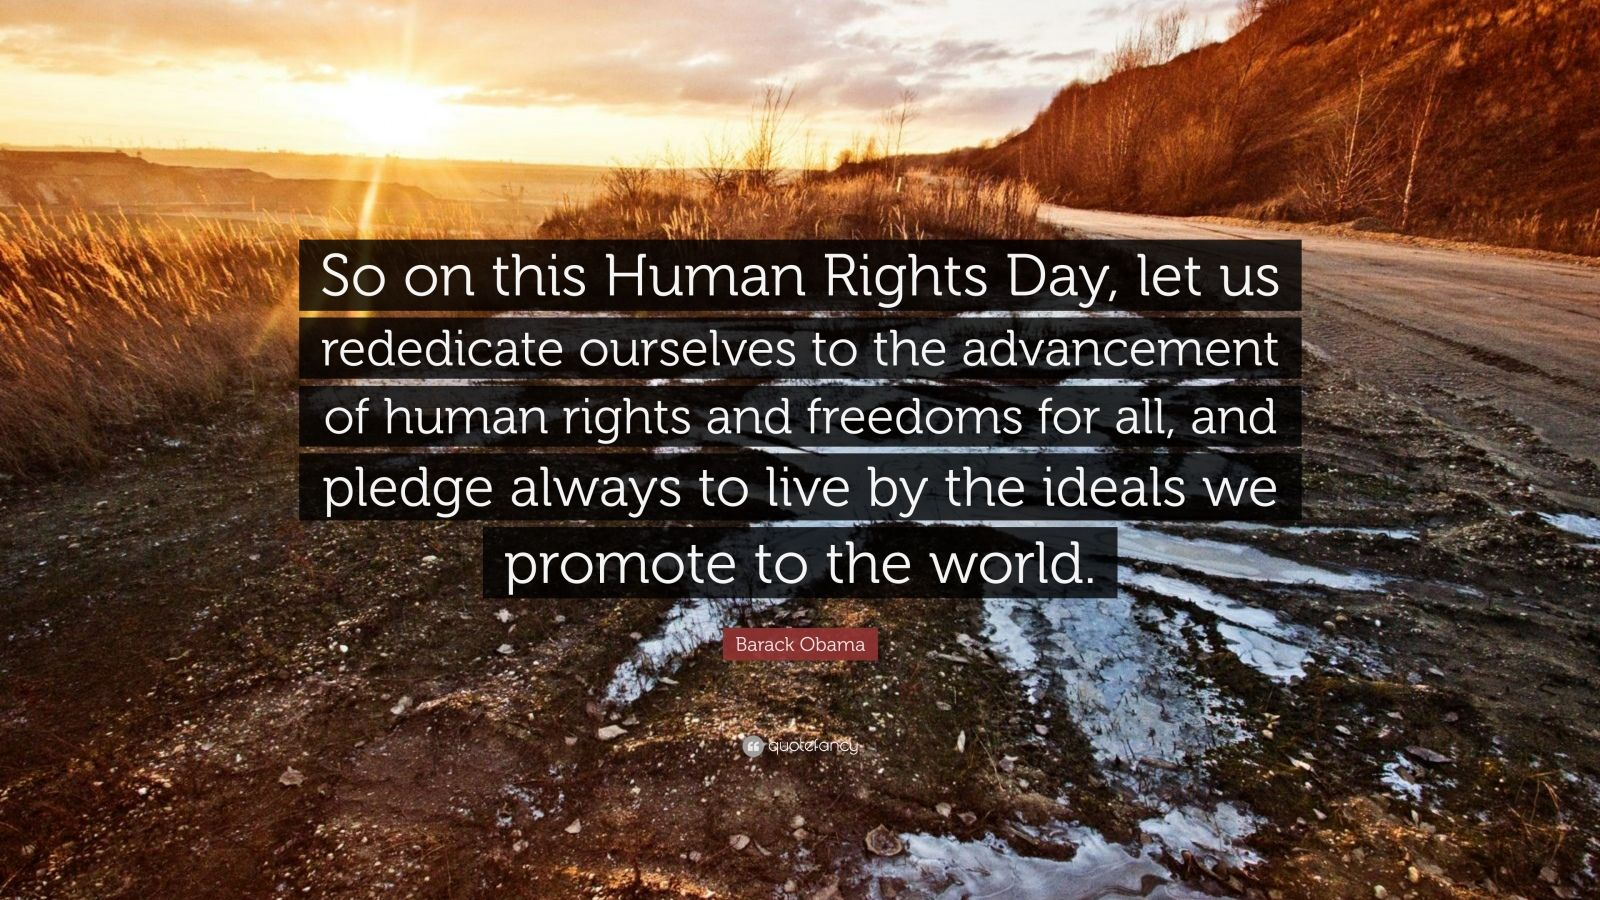 "Barack Obama Quote: ""So on this Human Rights Day, let us rededicate ourselves to the advancement of human rights and freedoms for all, and pledge always to live by the ideals we promote to the world."""